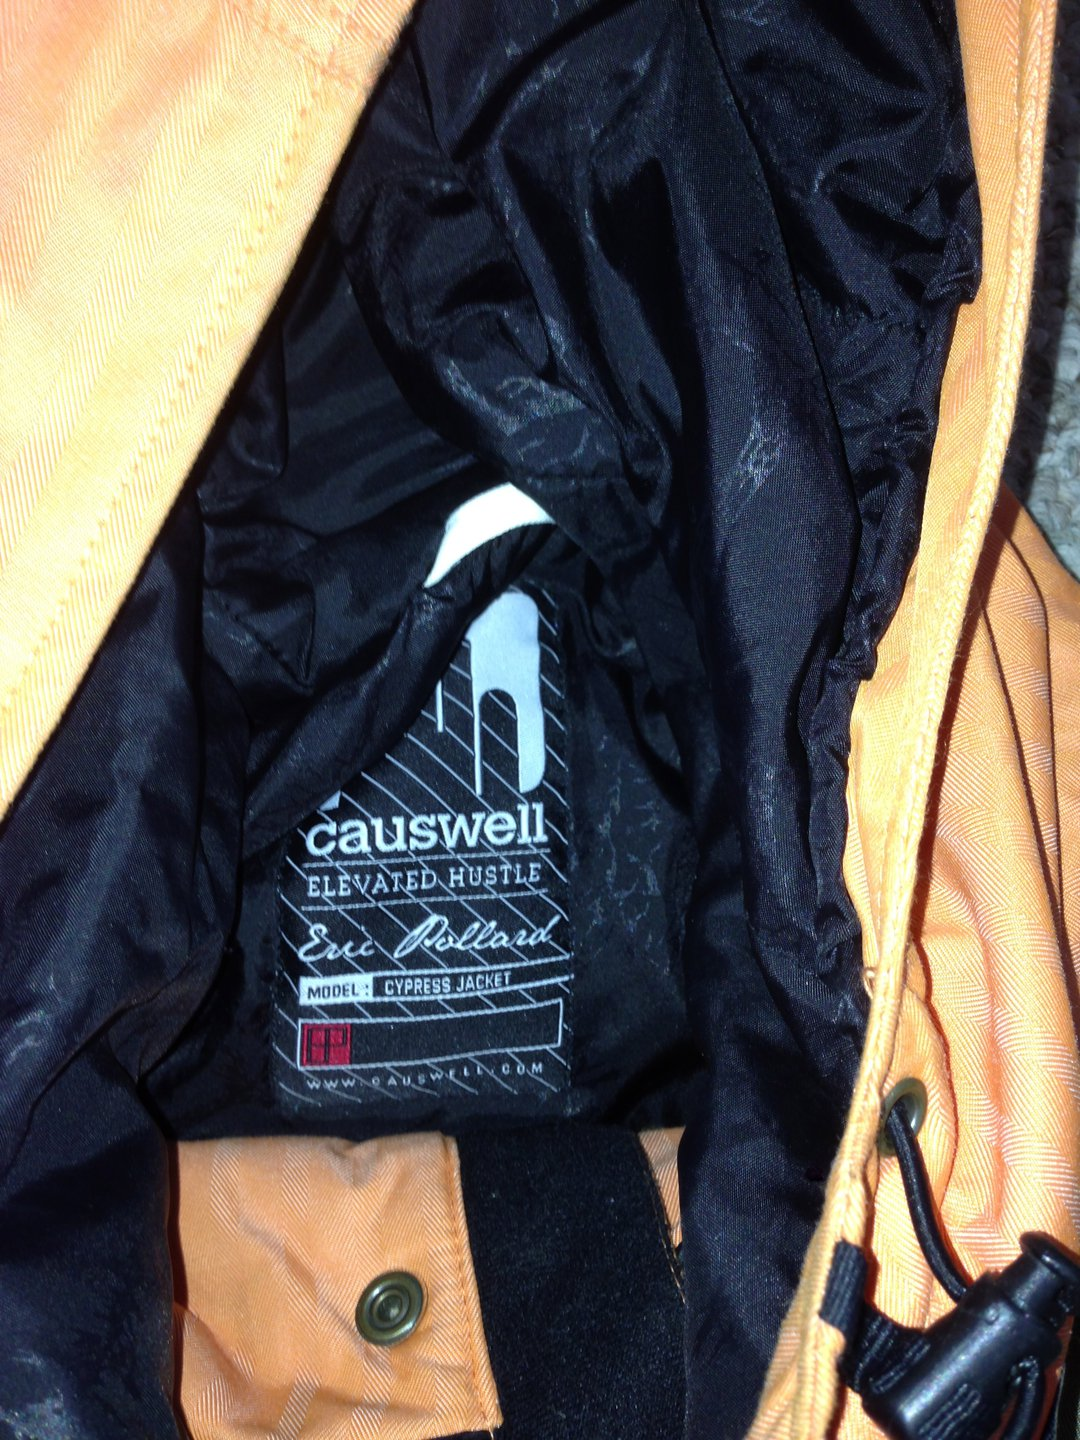 Causewell Jacket